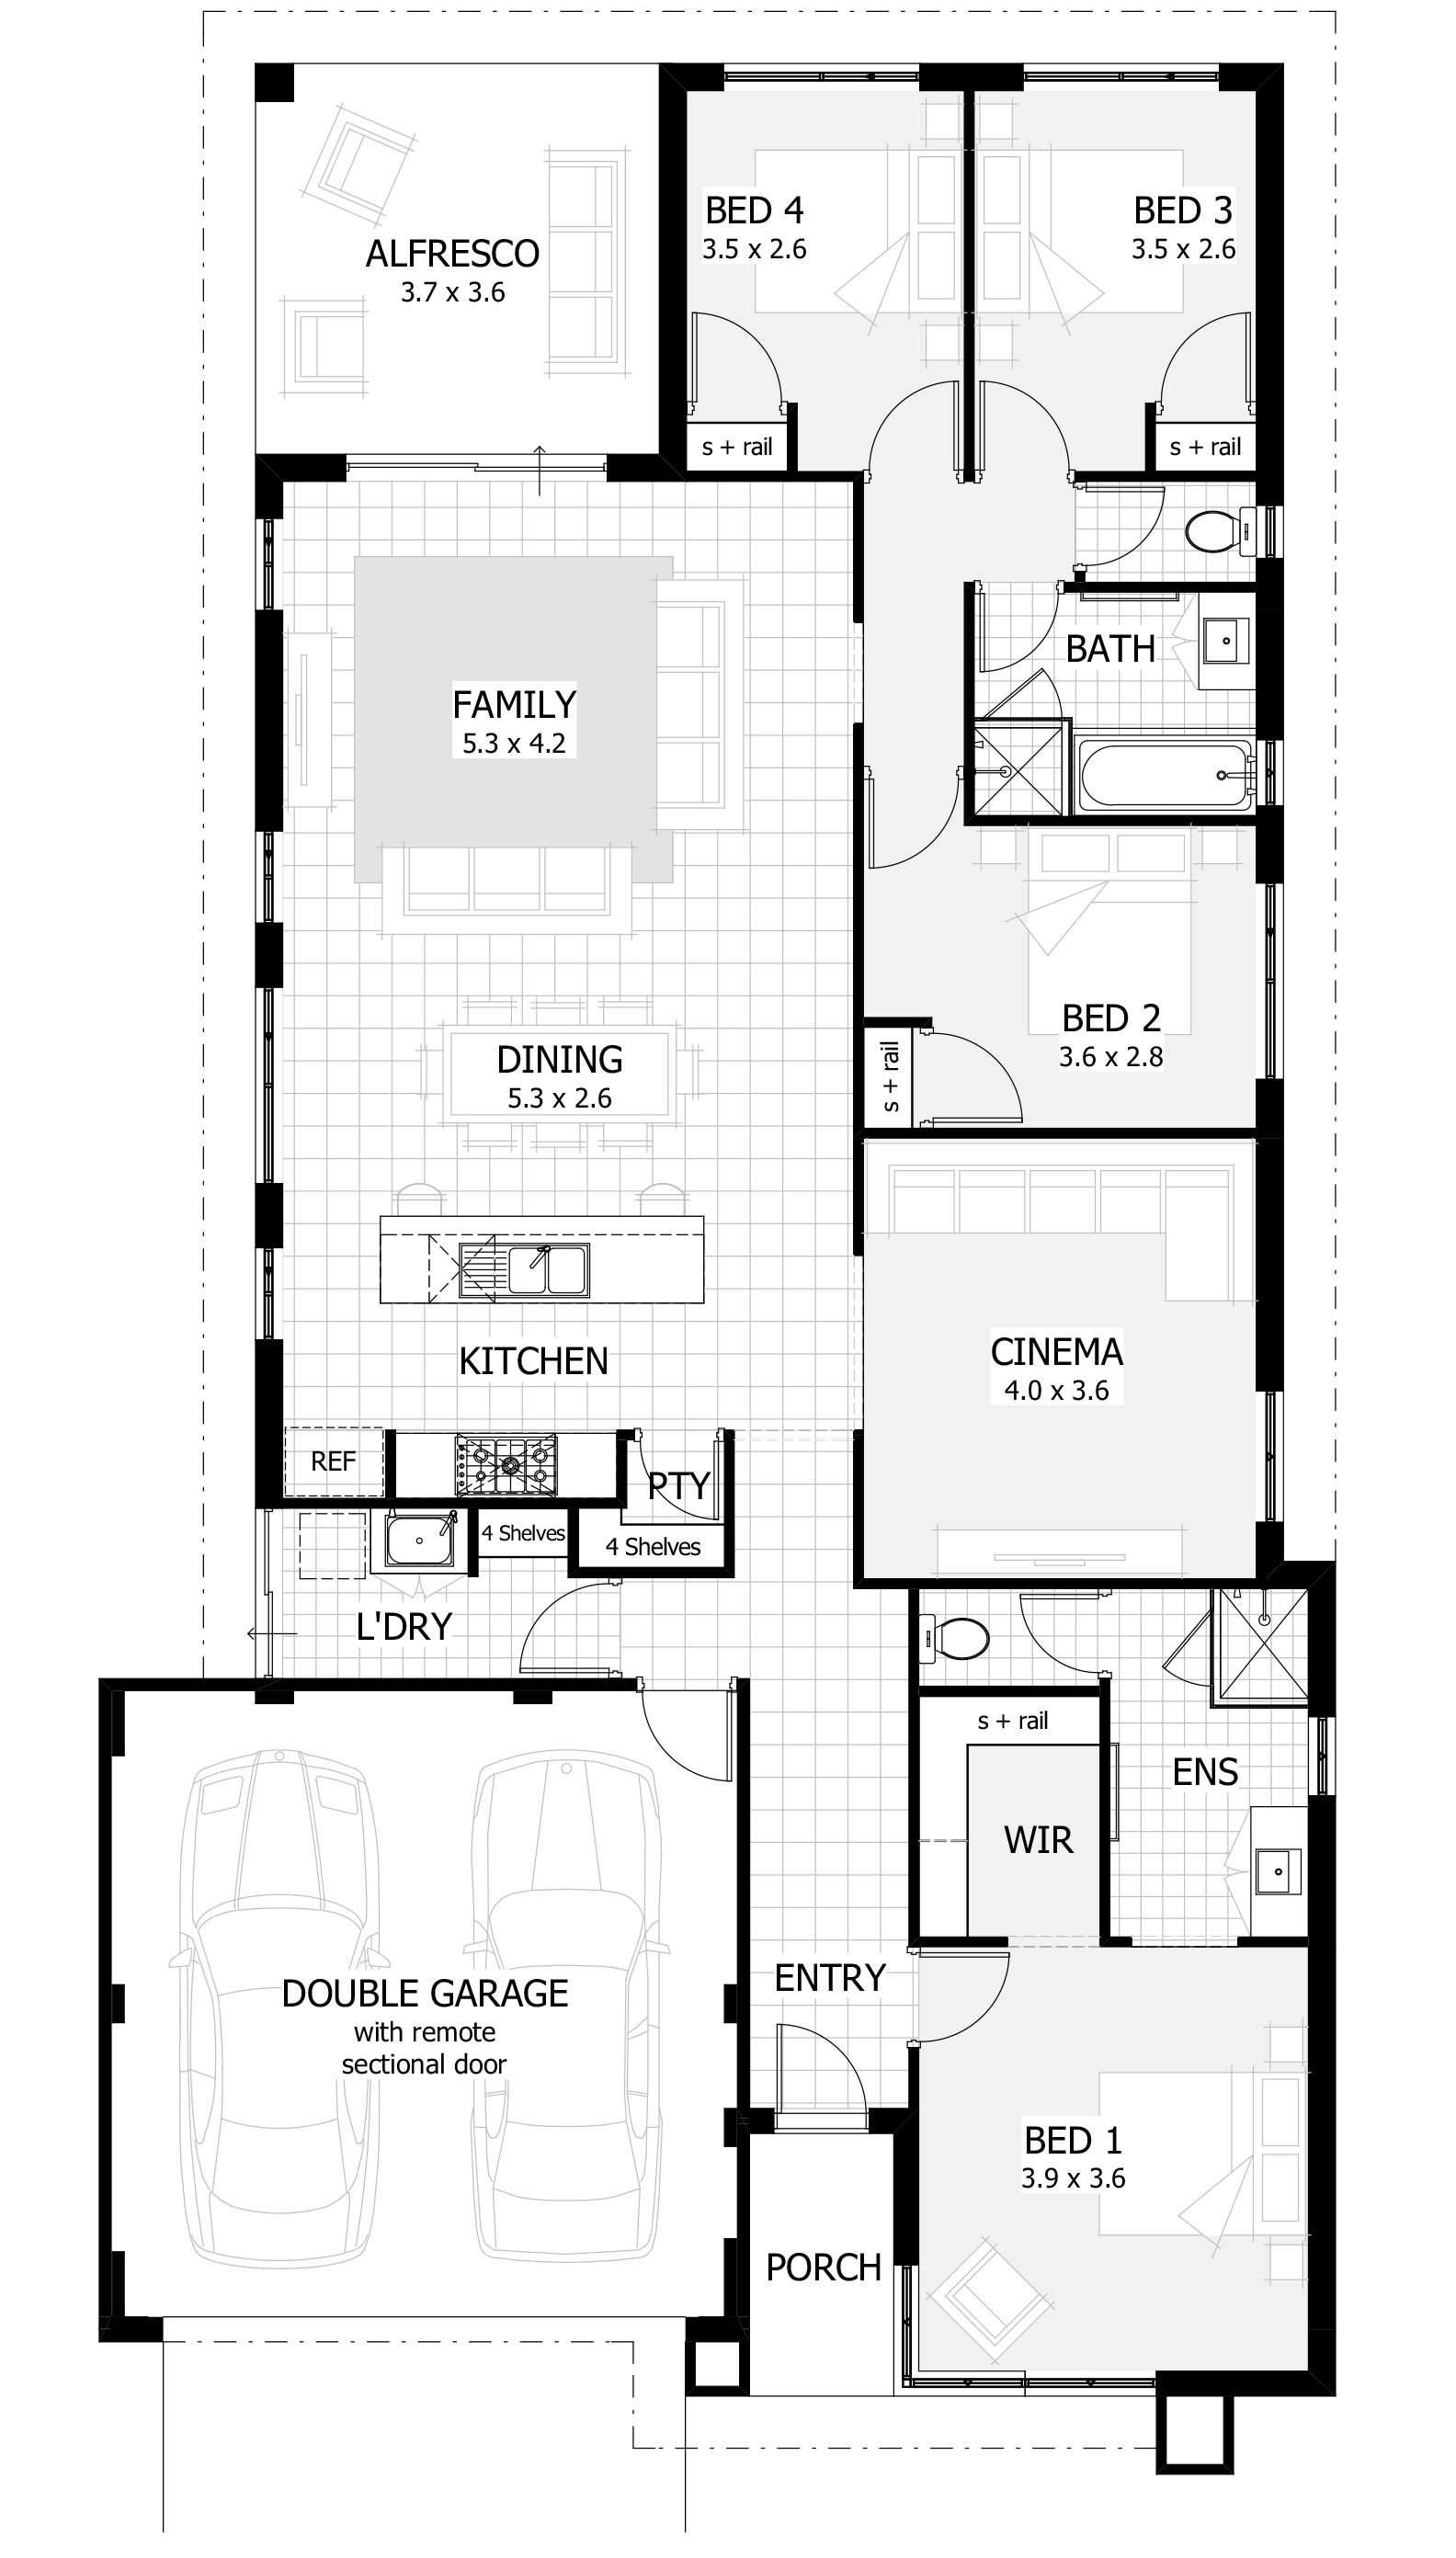 Home Plans Old Cottage Style House Small Craftsman Perth